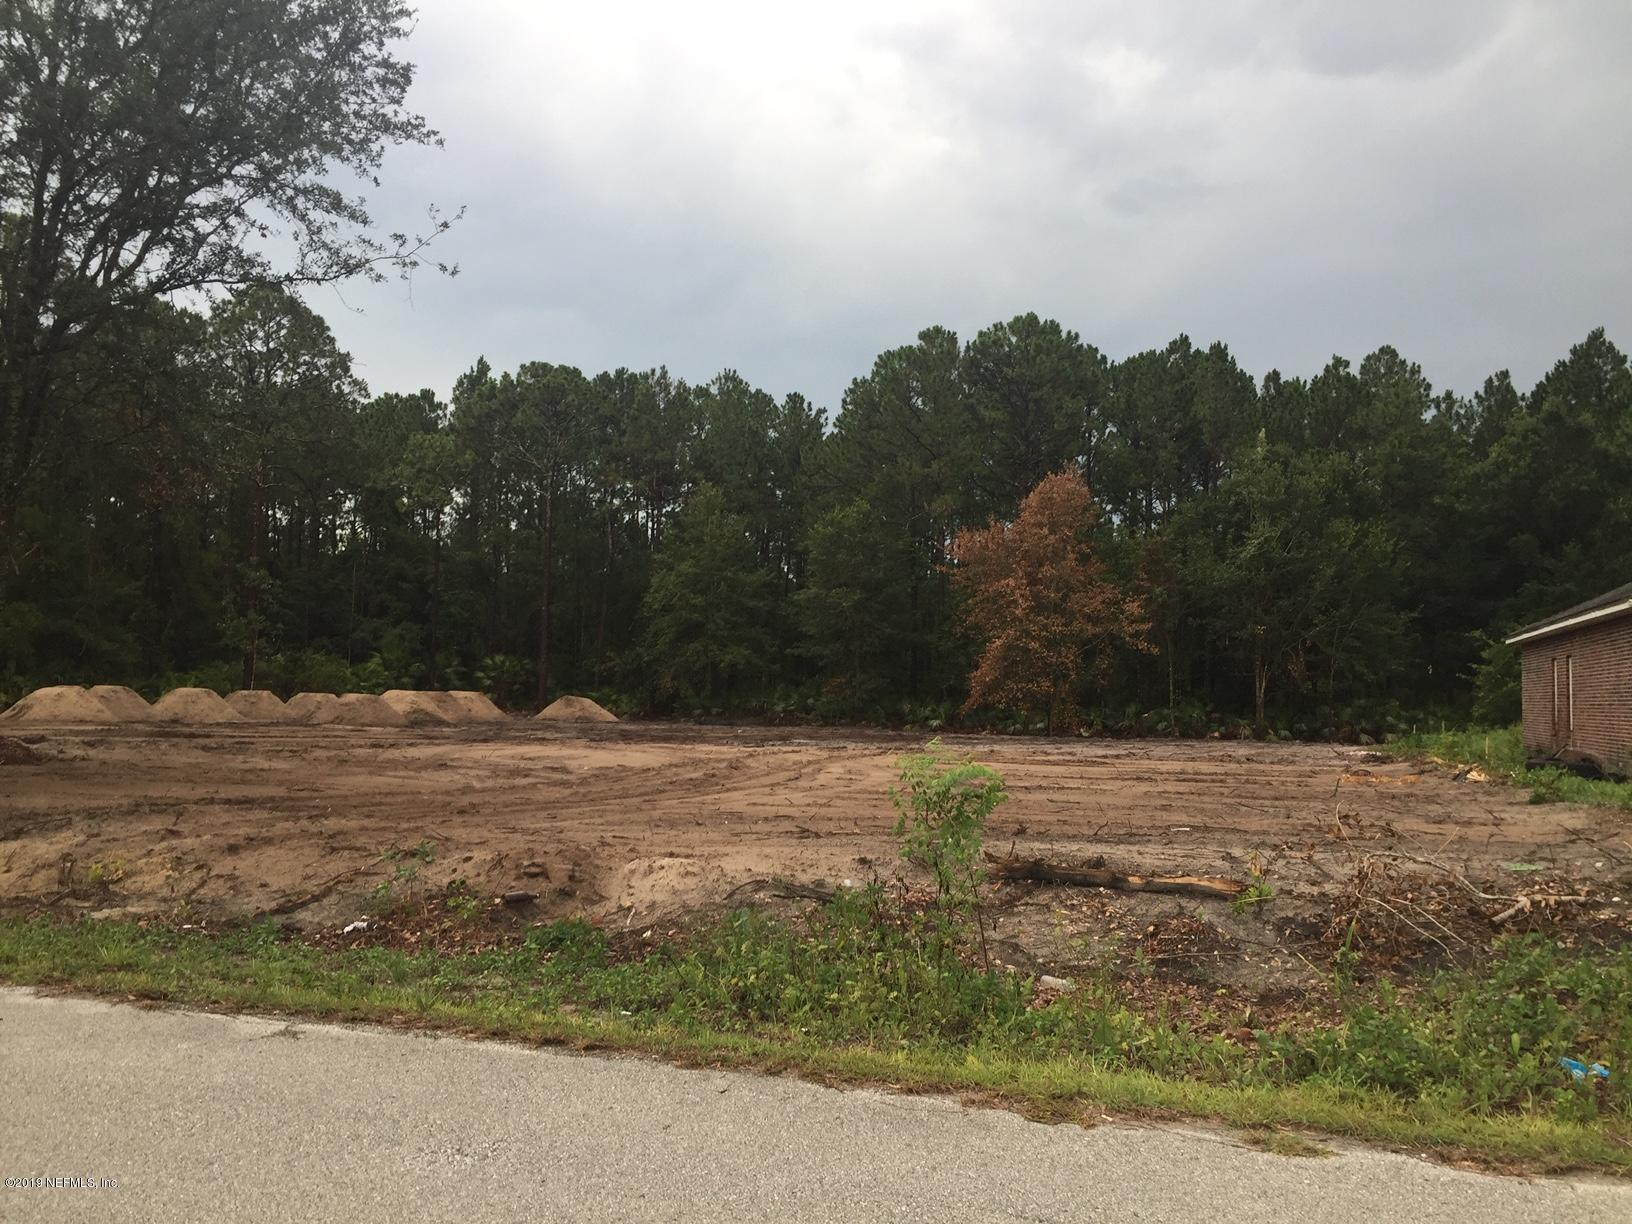 0 BIRDIES, JACKSONVILLE, FLORIDA 32256, ,Vacant land,For sale,BIRDIES,996436